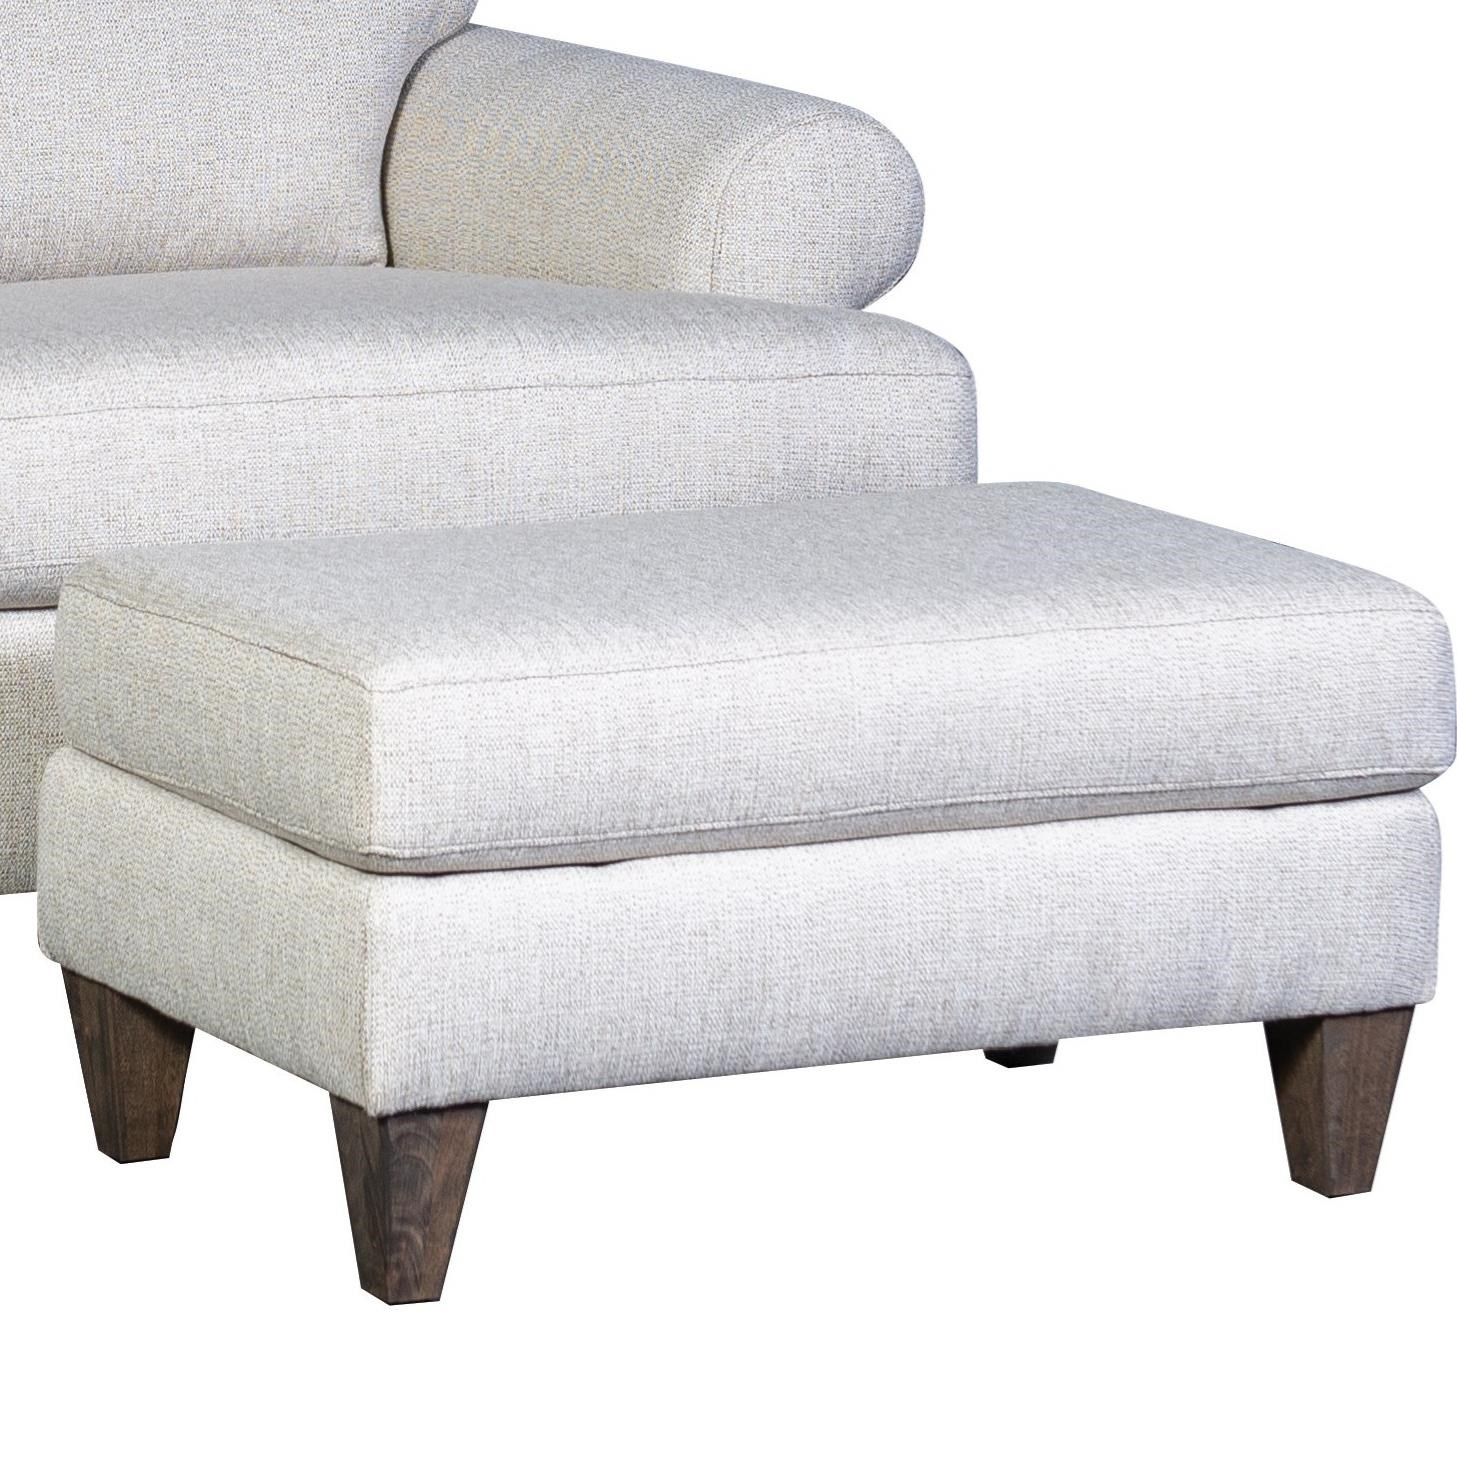 3270 Ottoman by Mayo at Story & Lee Furniture